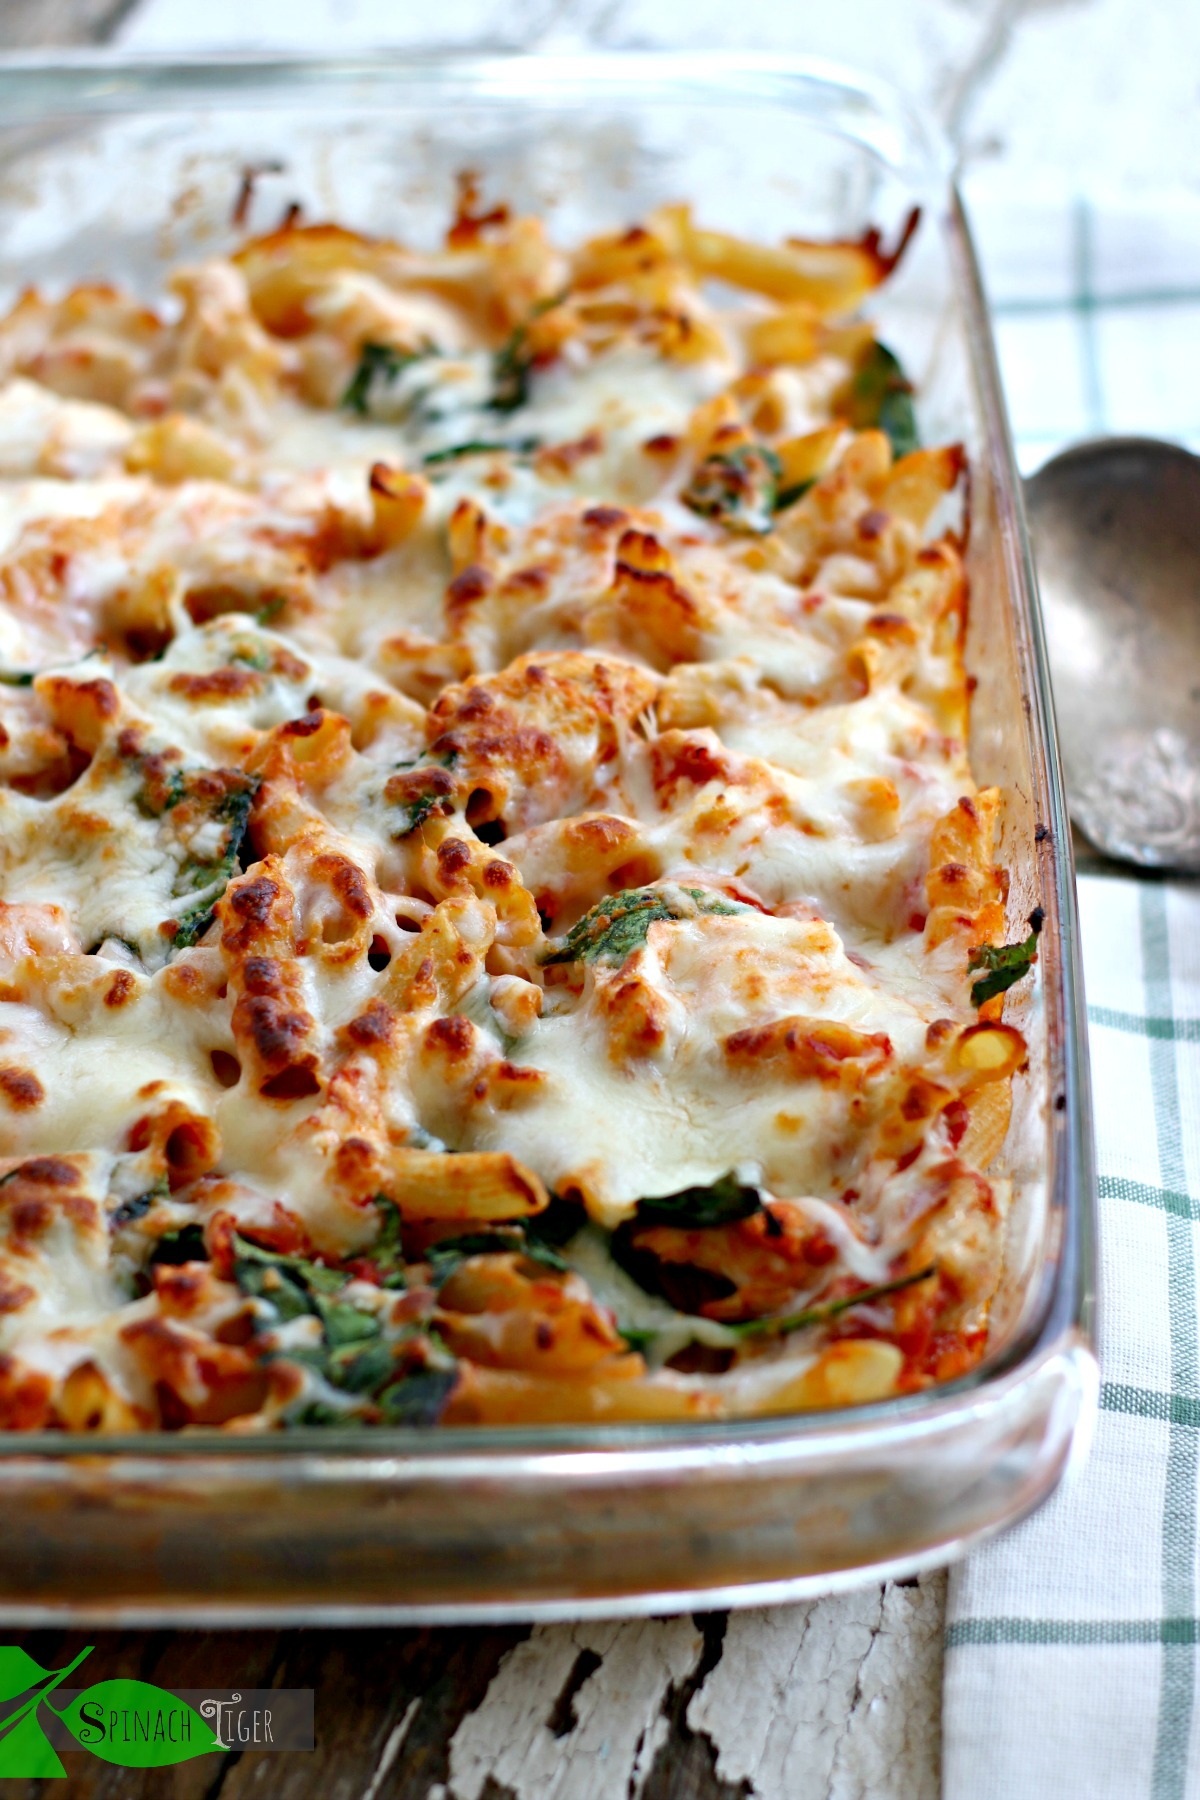 Best Chicken Pasta Bake from Scratch by Spinach Tiger